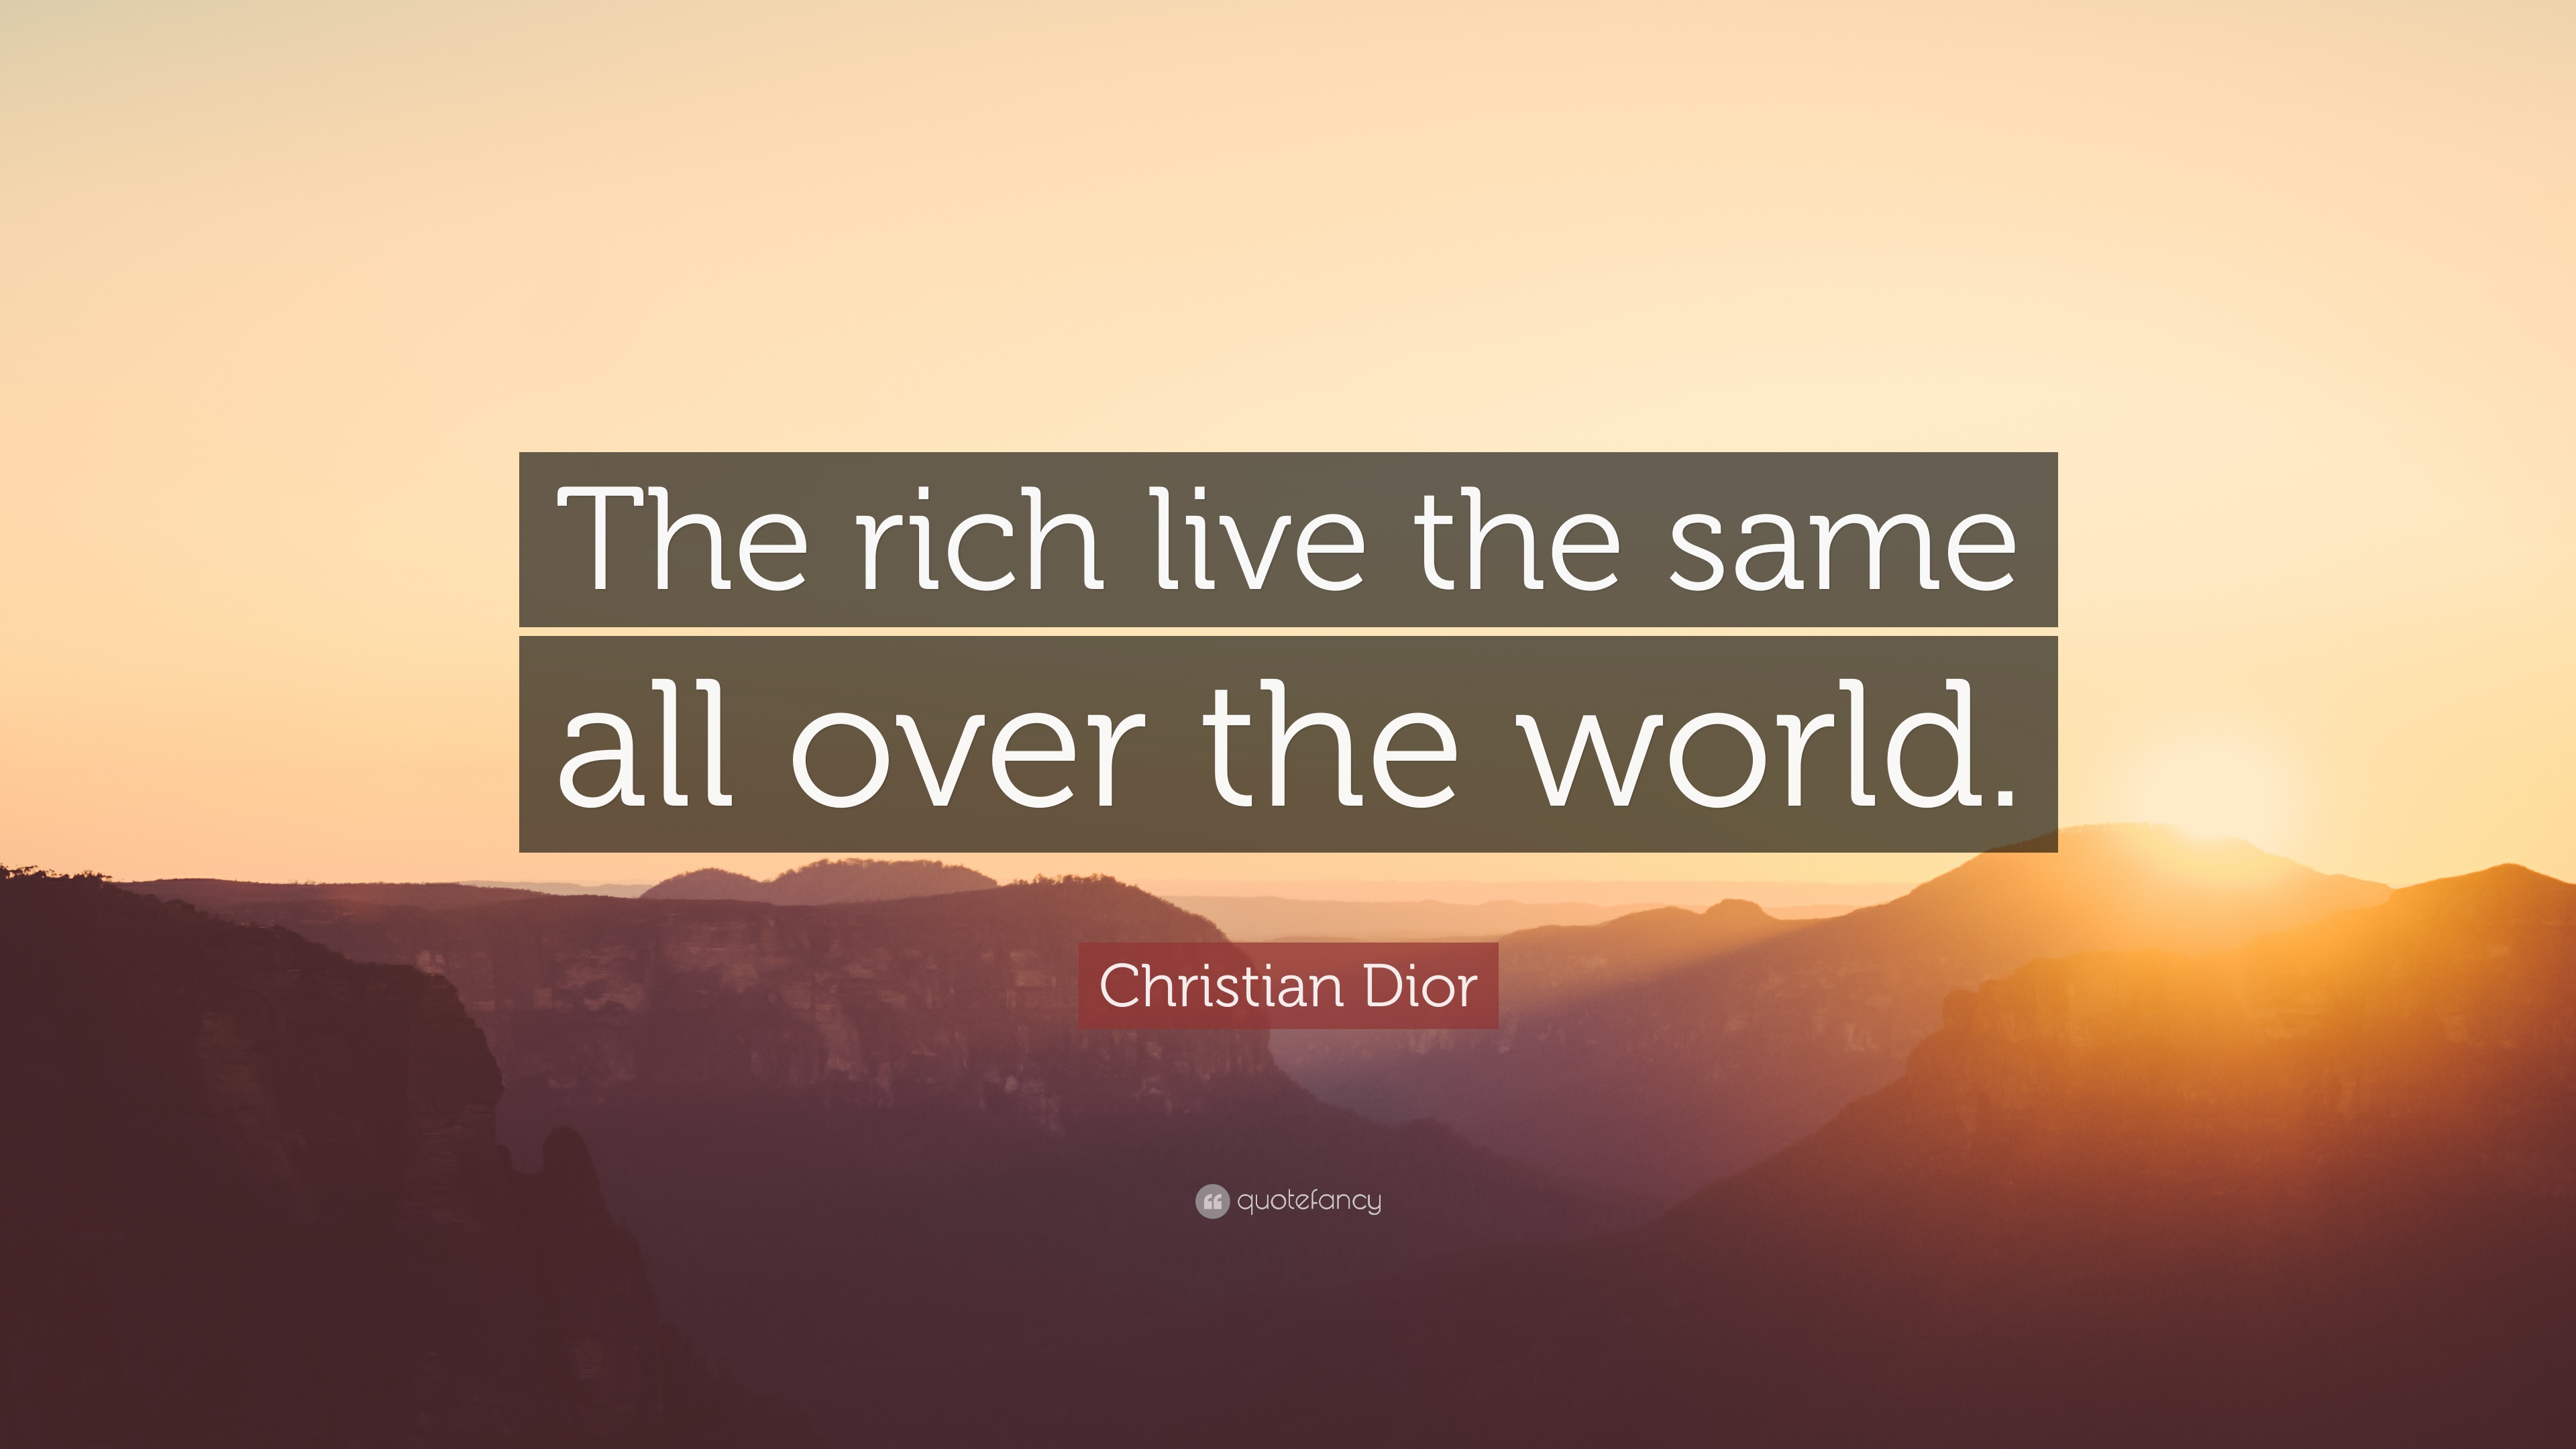 Christian Dior Quotes (49 Wallpapers)